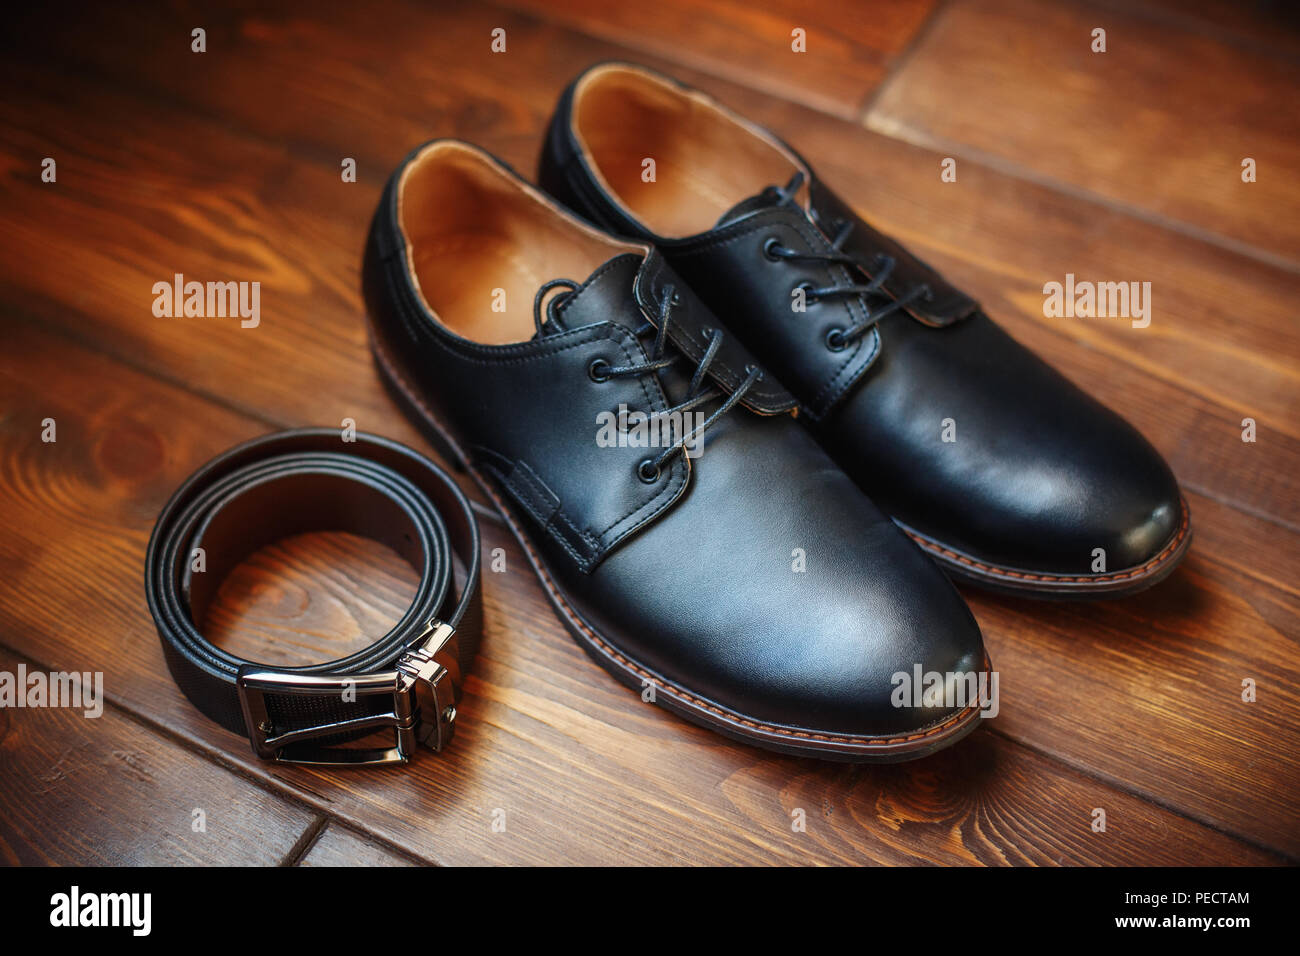 Black leather male shoes and belt on